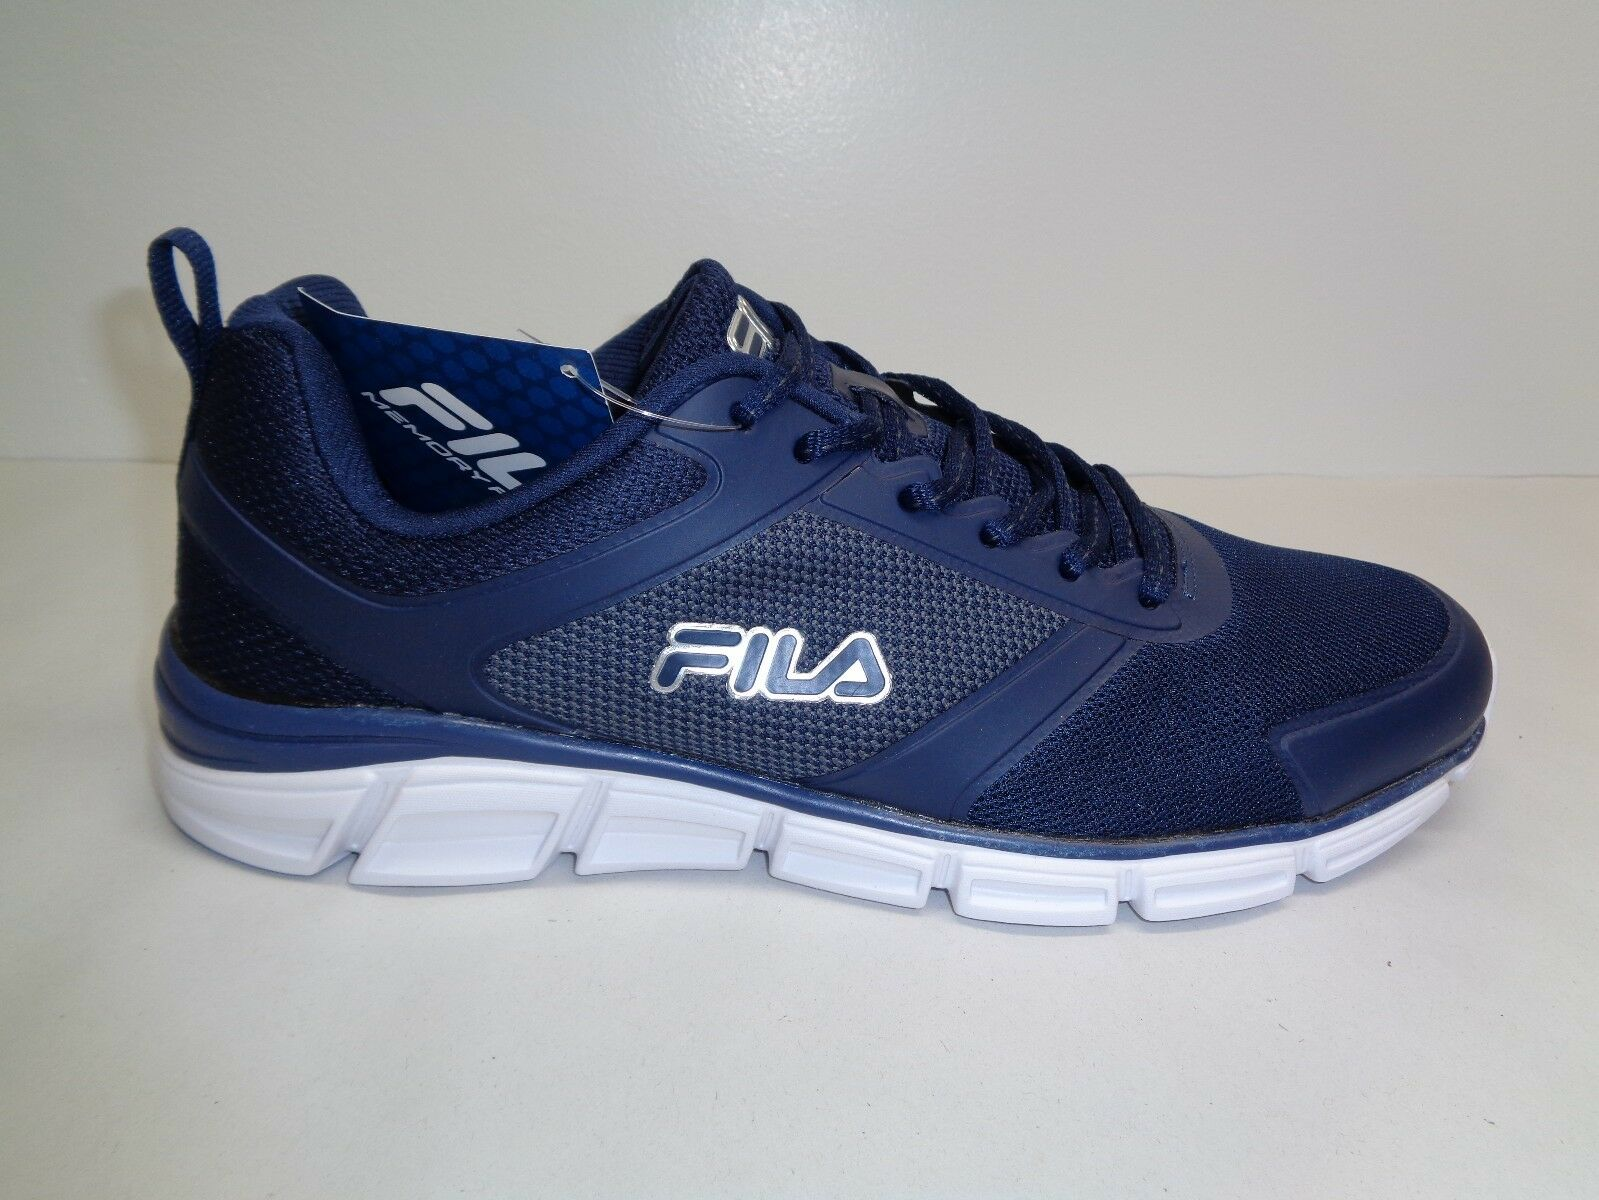 Fila Size 11 MEMORY STEELSPRINT Blue Training Athletic Sneakers New Mens Shoes